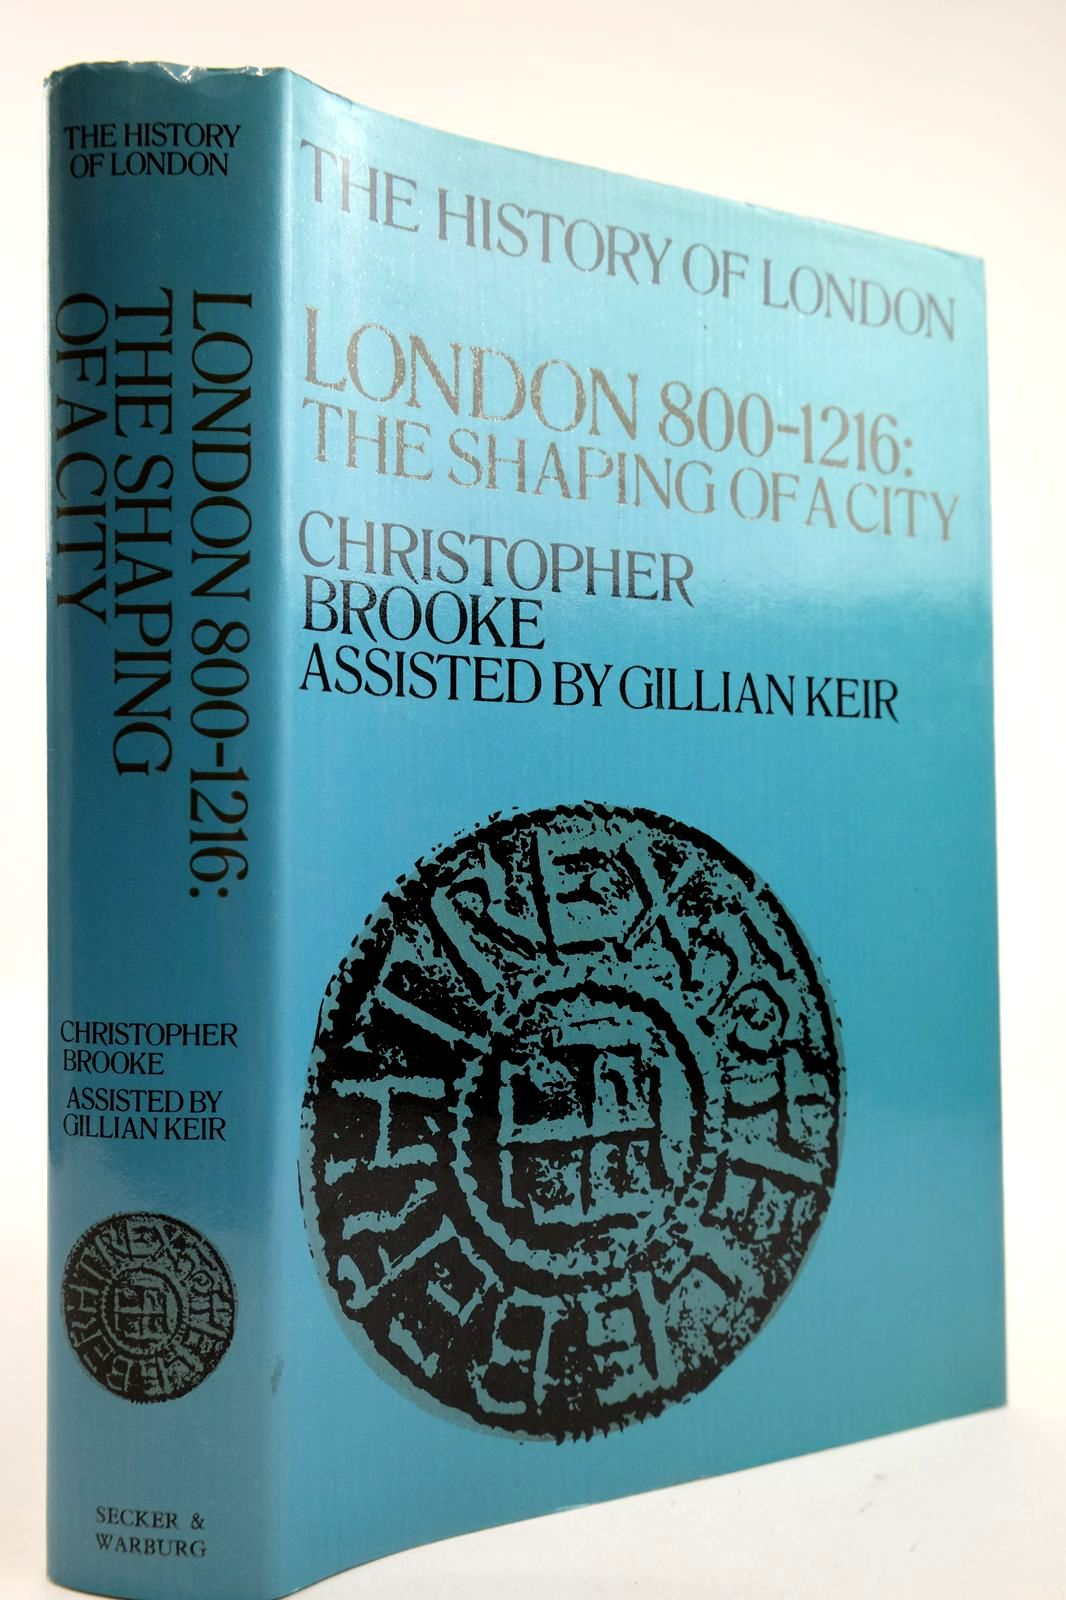 Photo of LONDON 800-1216 THE SHAPING OF A CITY